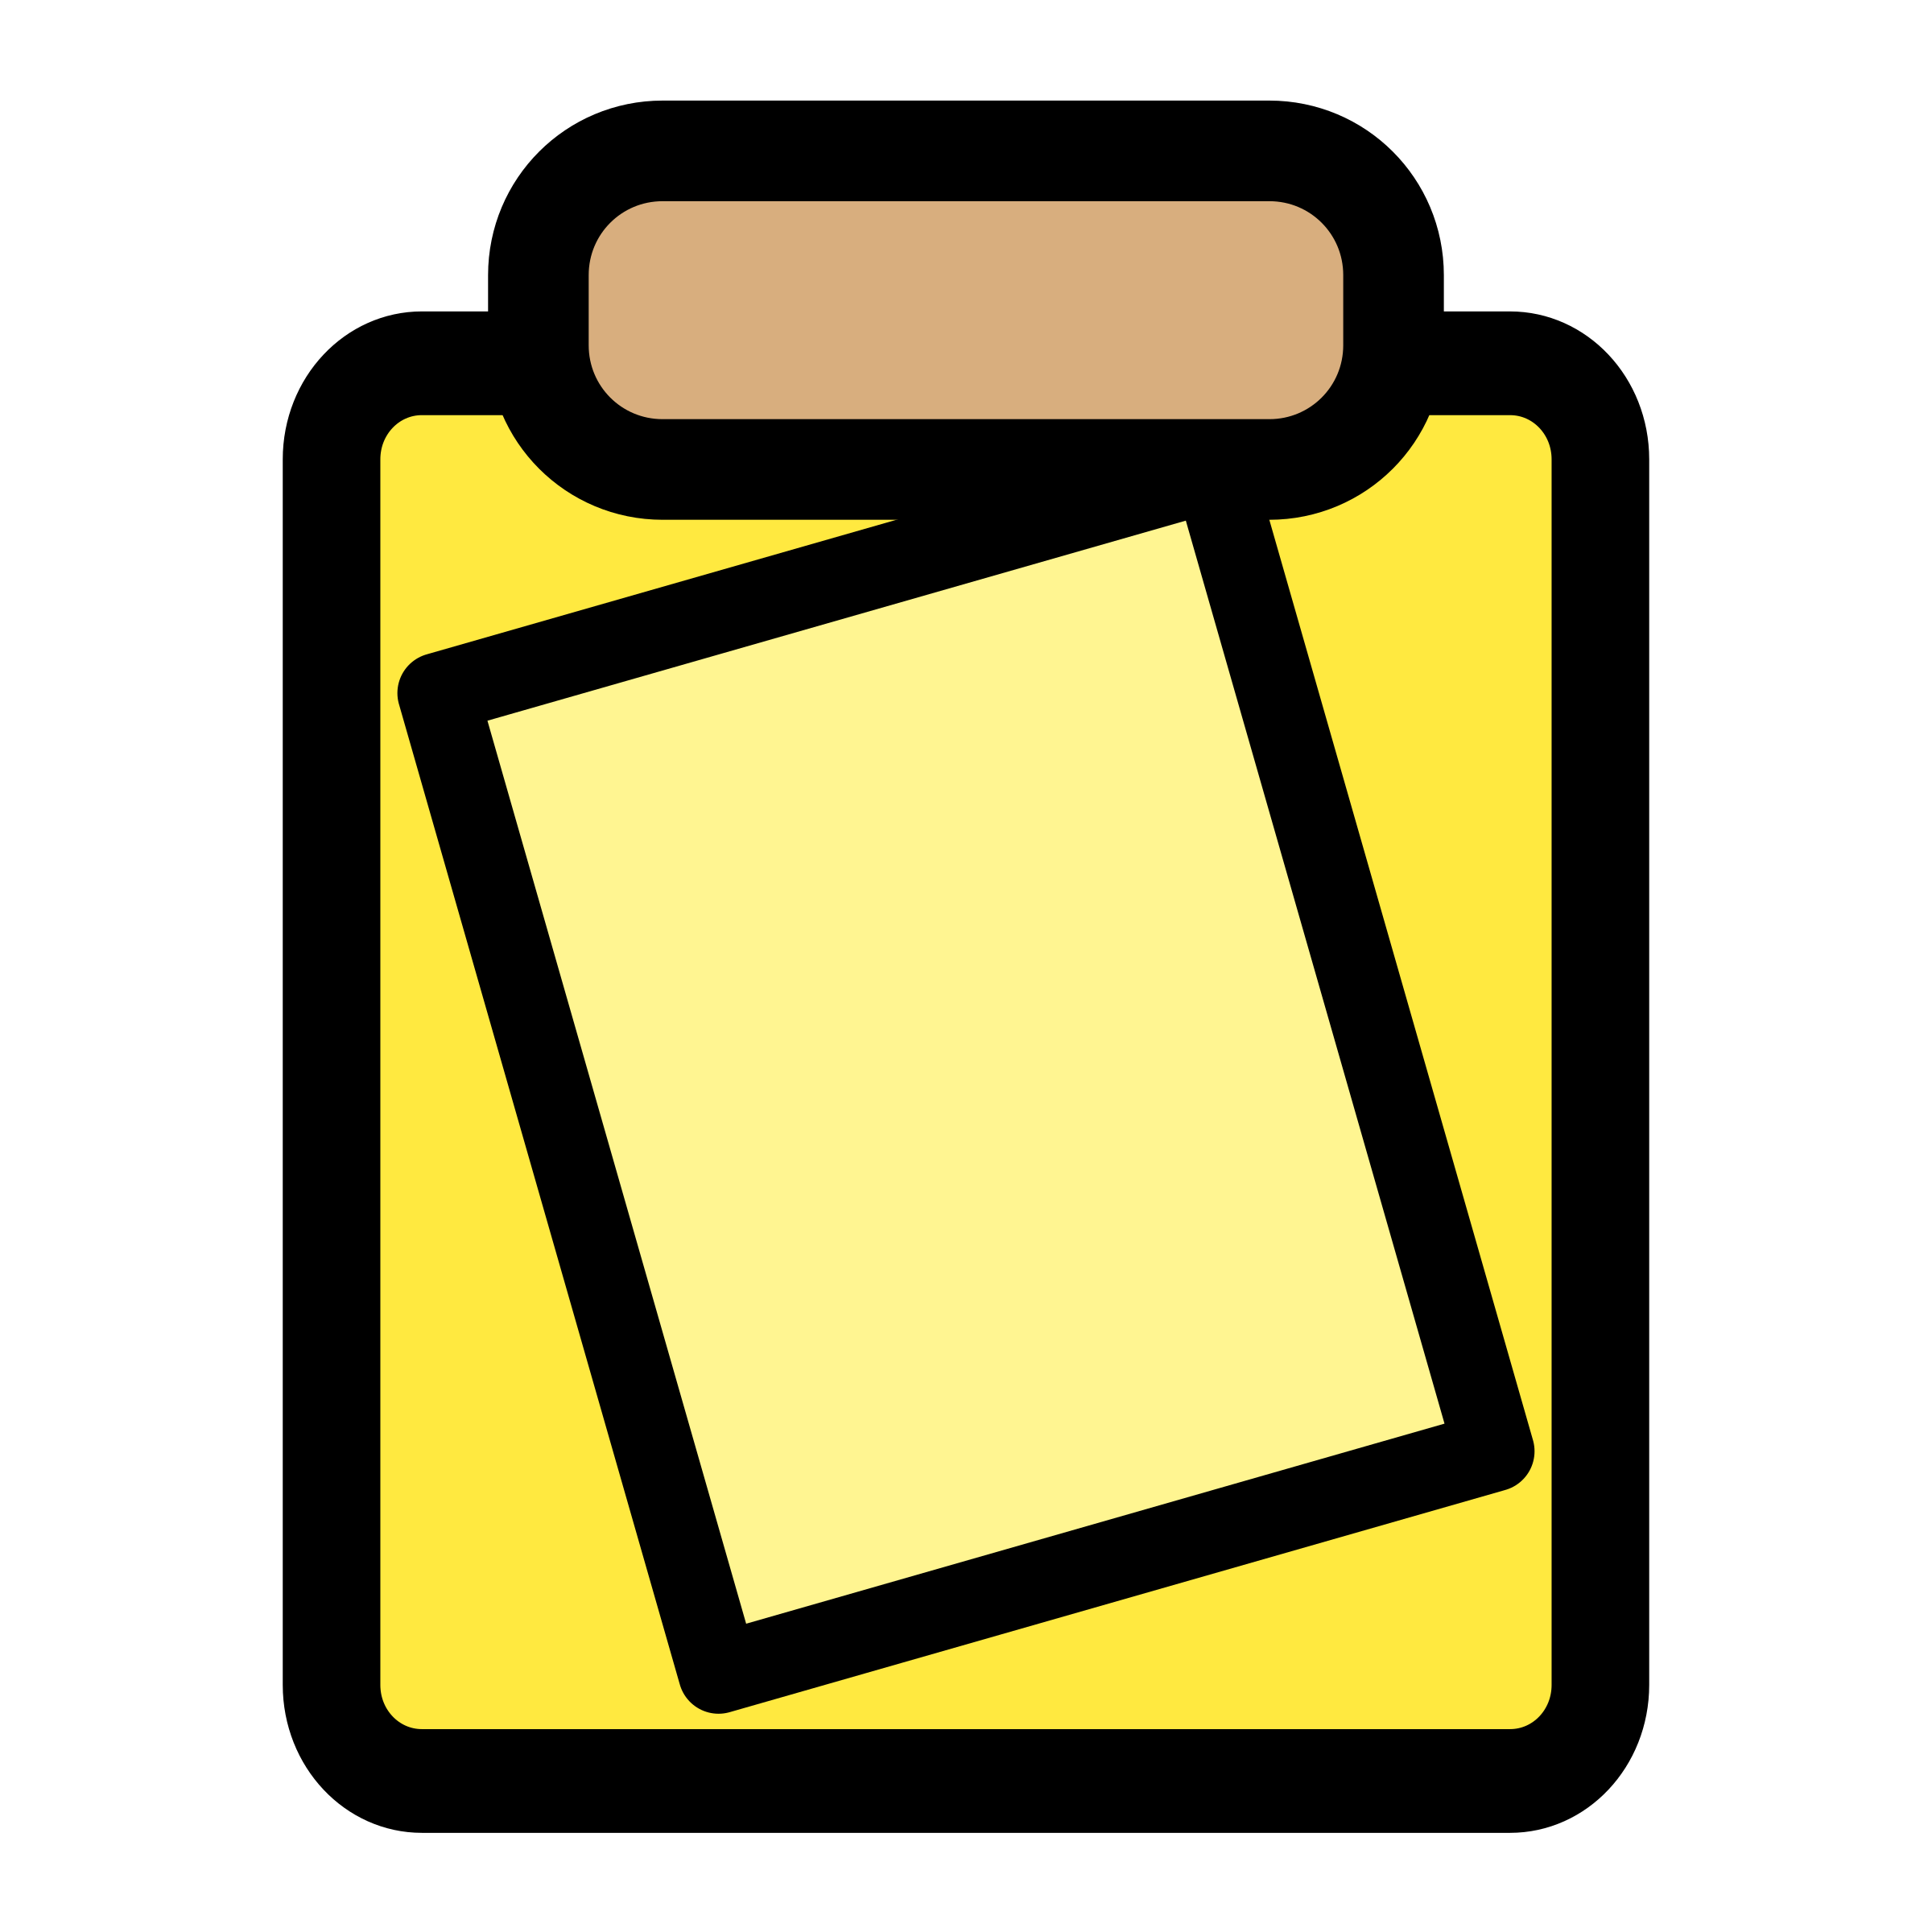 Transparent clipboard big. Primary tool icons png